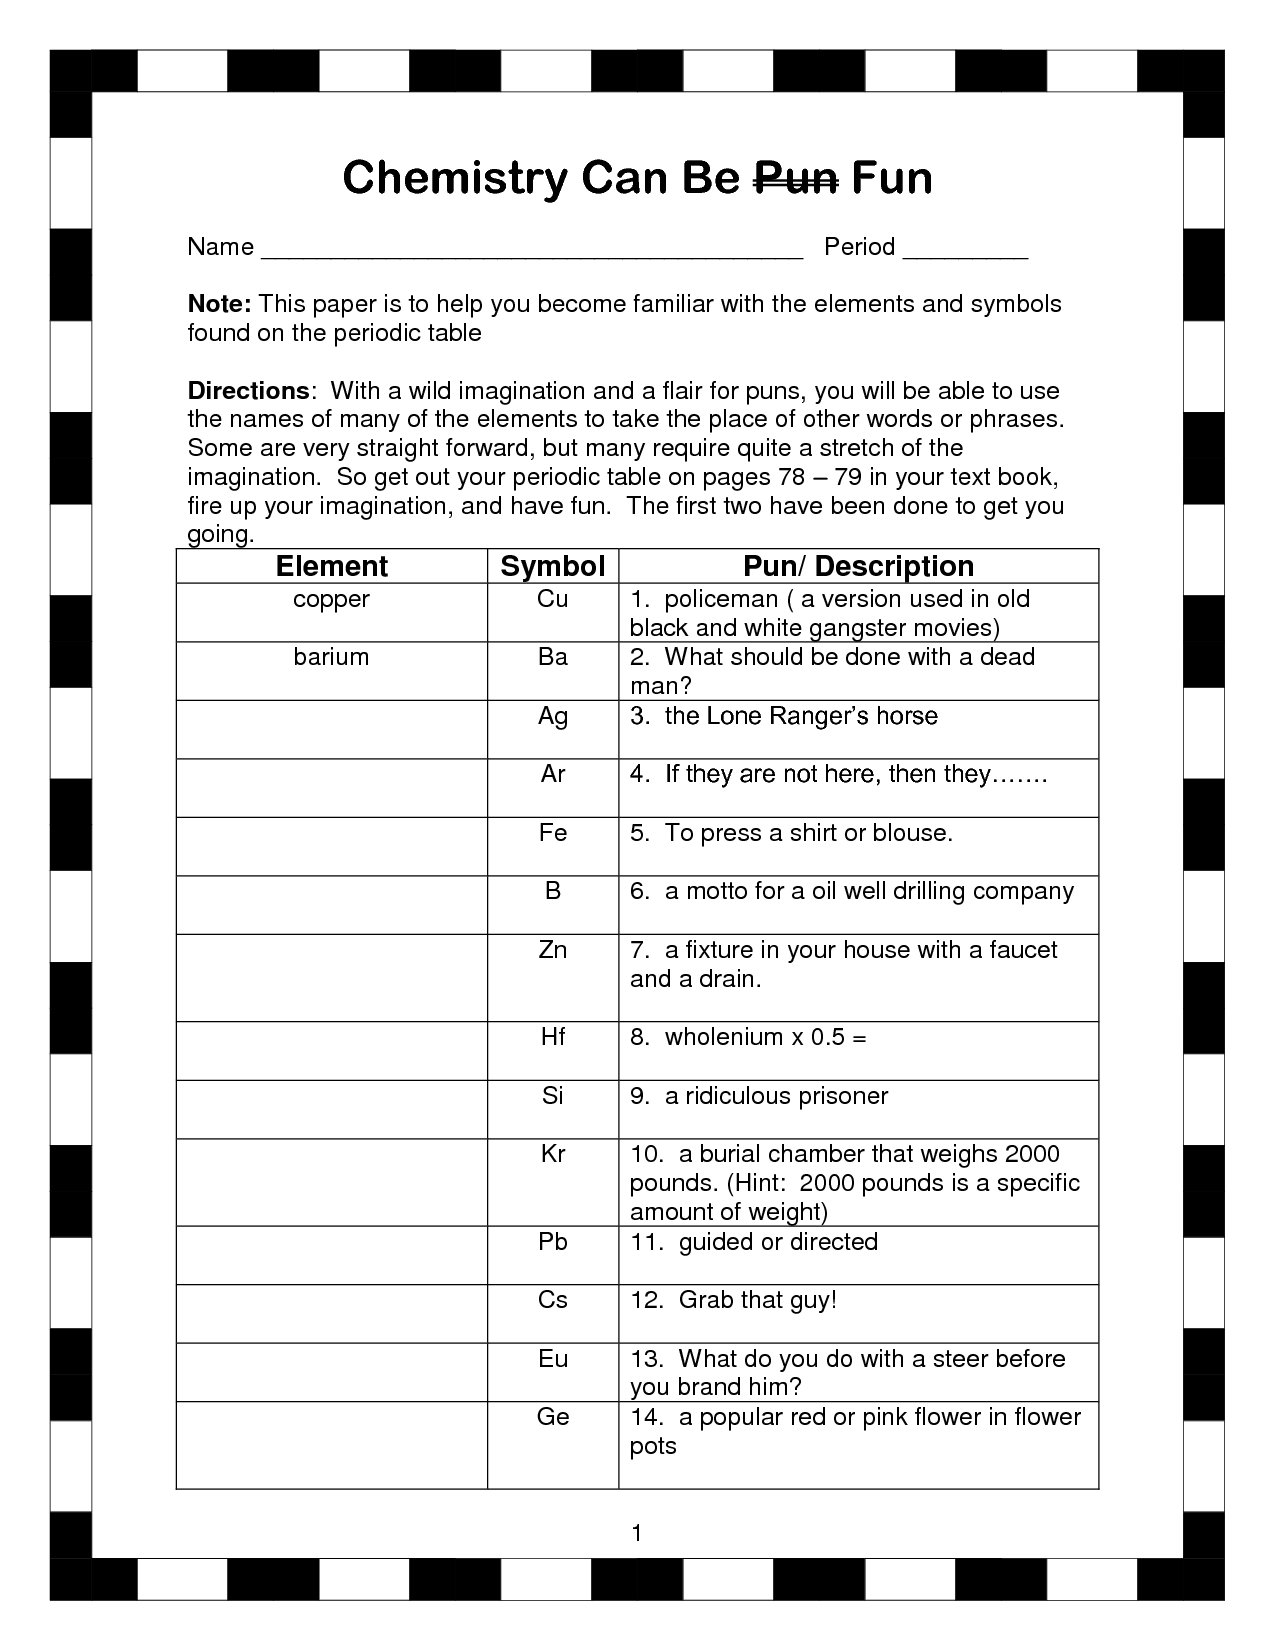 35 Elements And Their Symbols Worksheet Answers